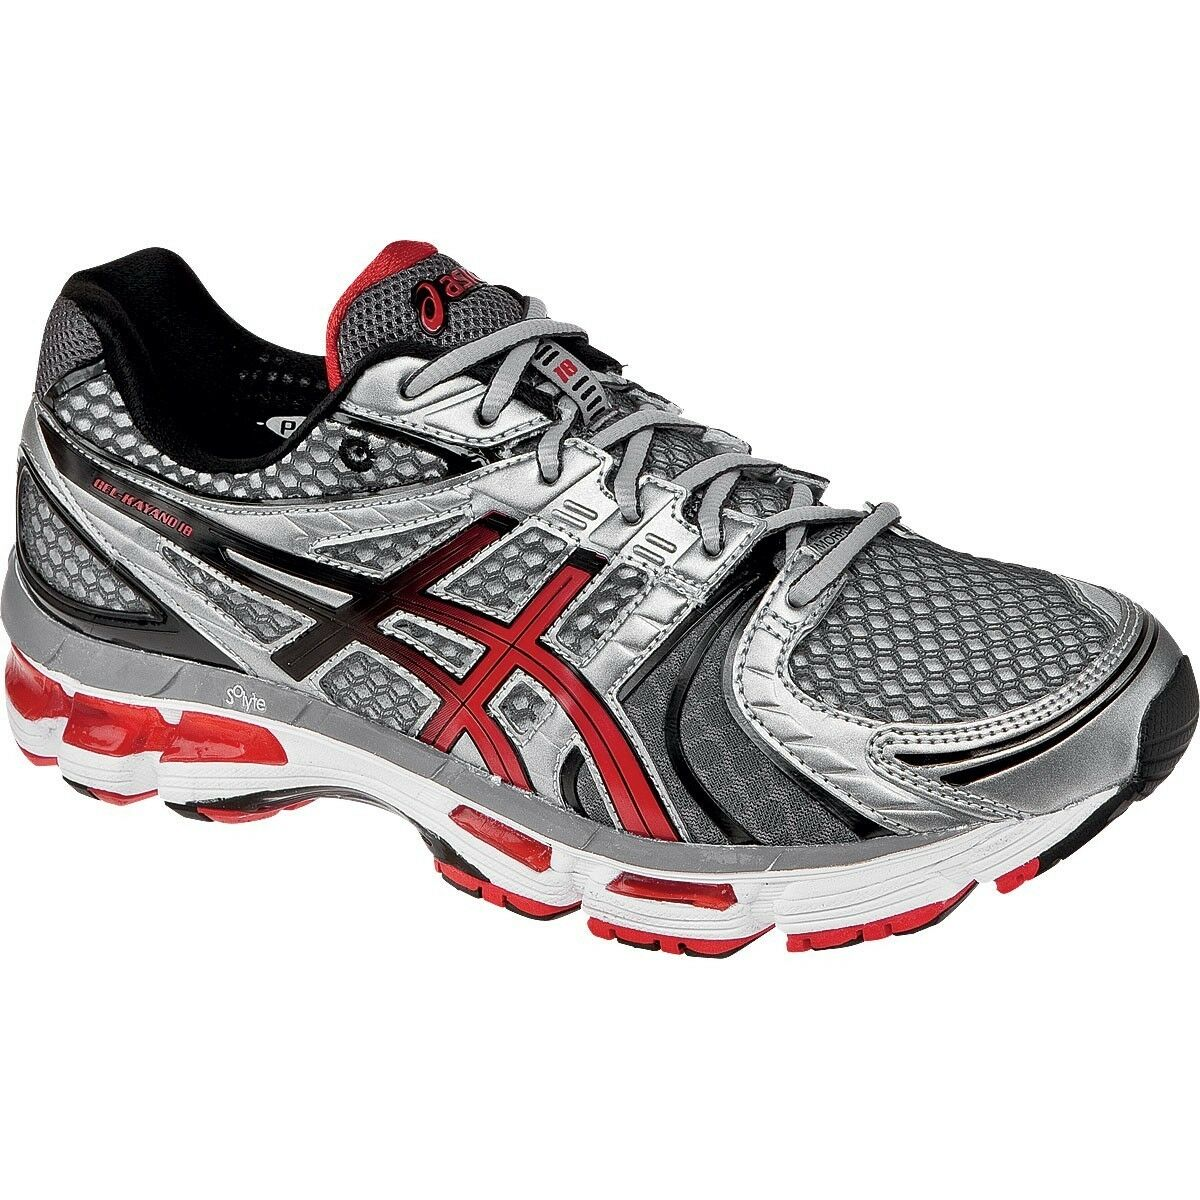 01b1508cdae7 Details about NEW ASICS MENS KAYANO 18 GEL RUNNING TRAINING FITNESS  ATHLETIC SNEAKERS SHOES